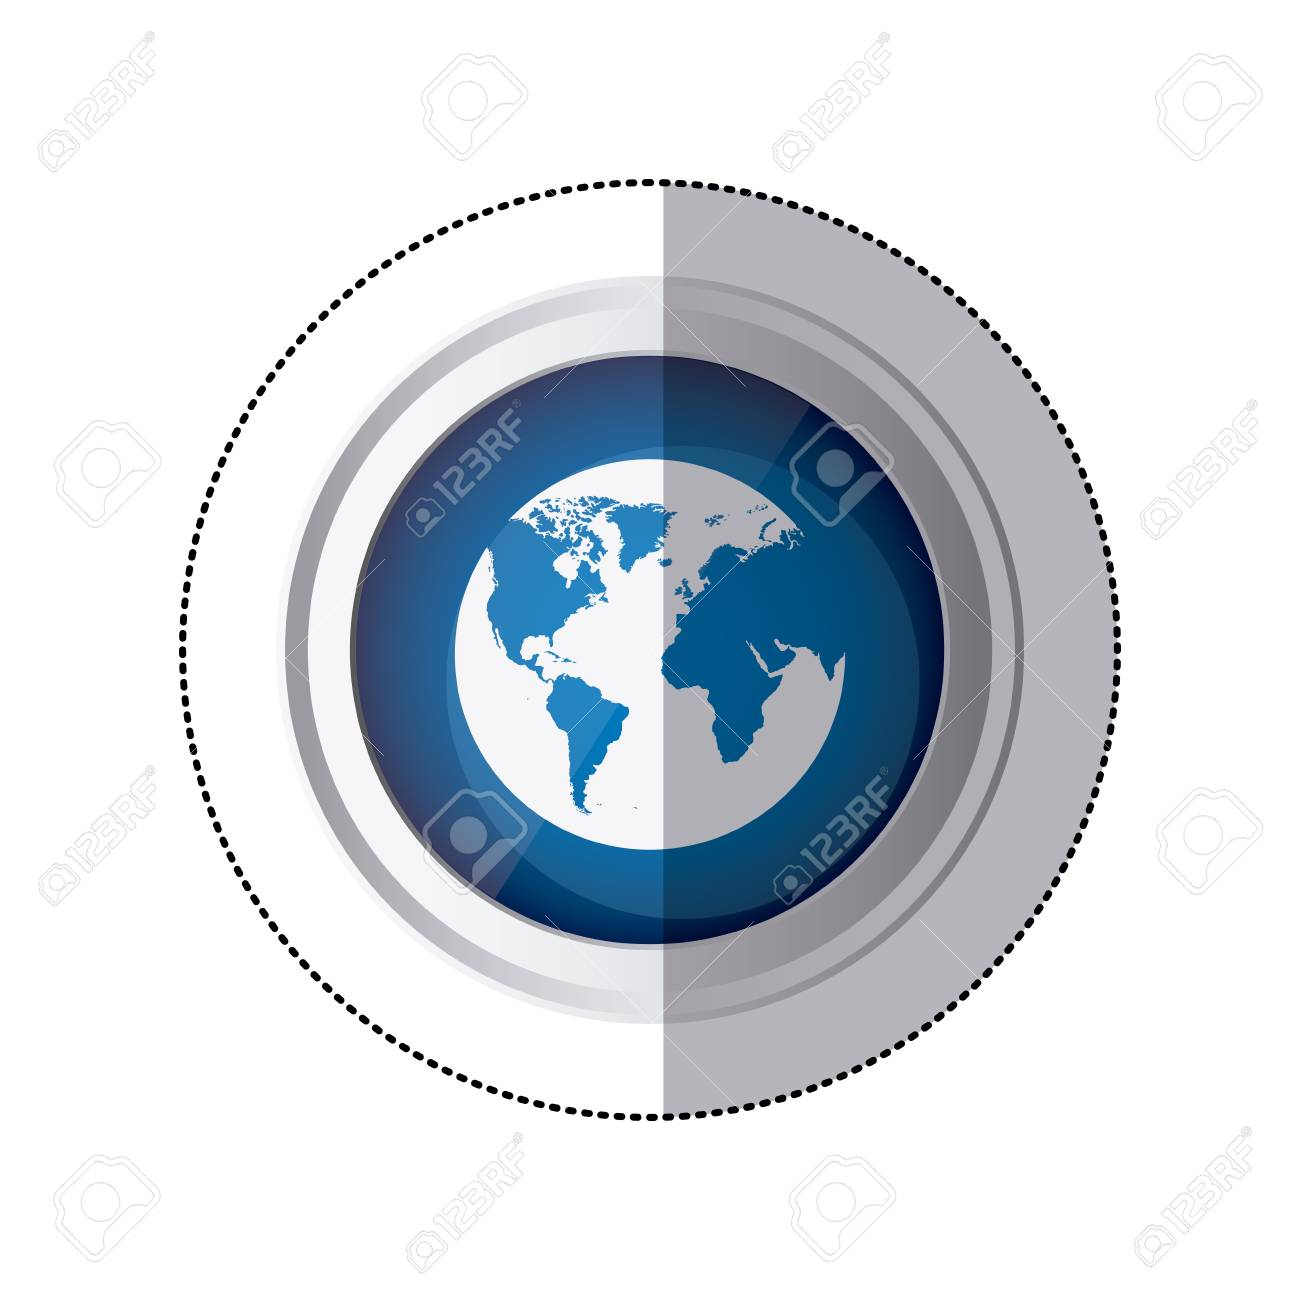 Sticker blue circular button with silhouette globe earth world sticker blue circular button with silhouette globe earth world map vector illustration stock vector 72908705 gumiabroncs Choice Image